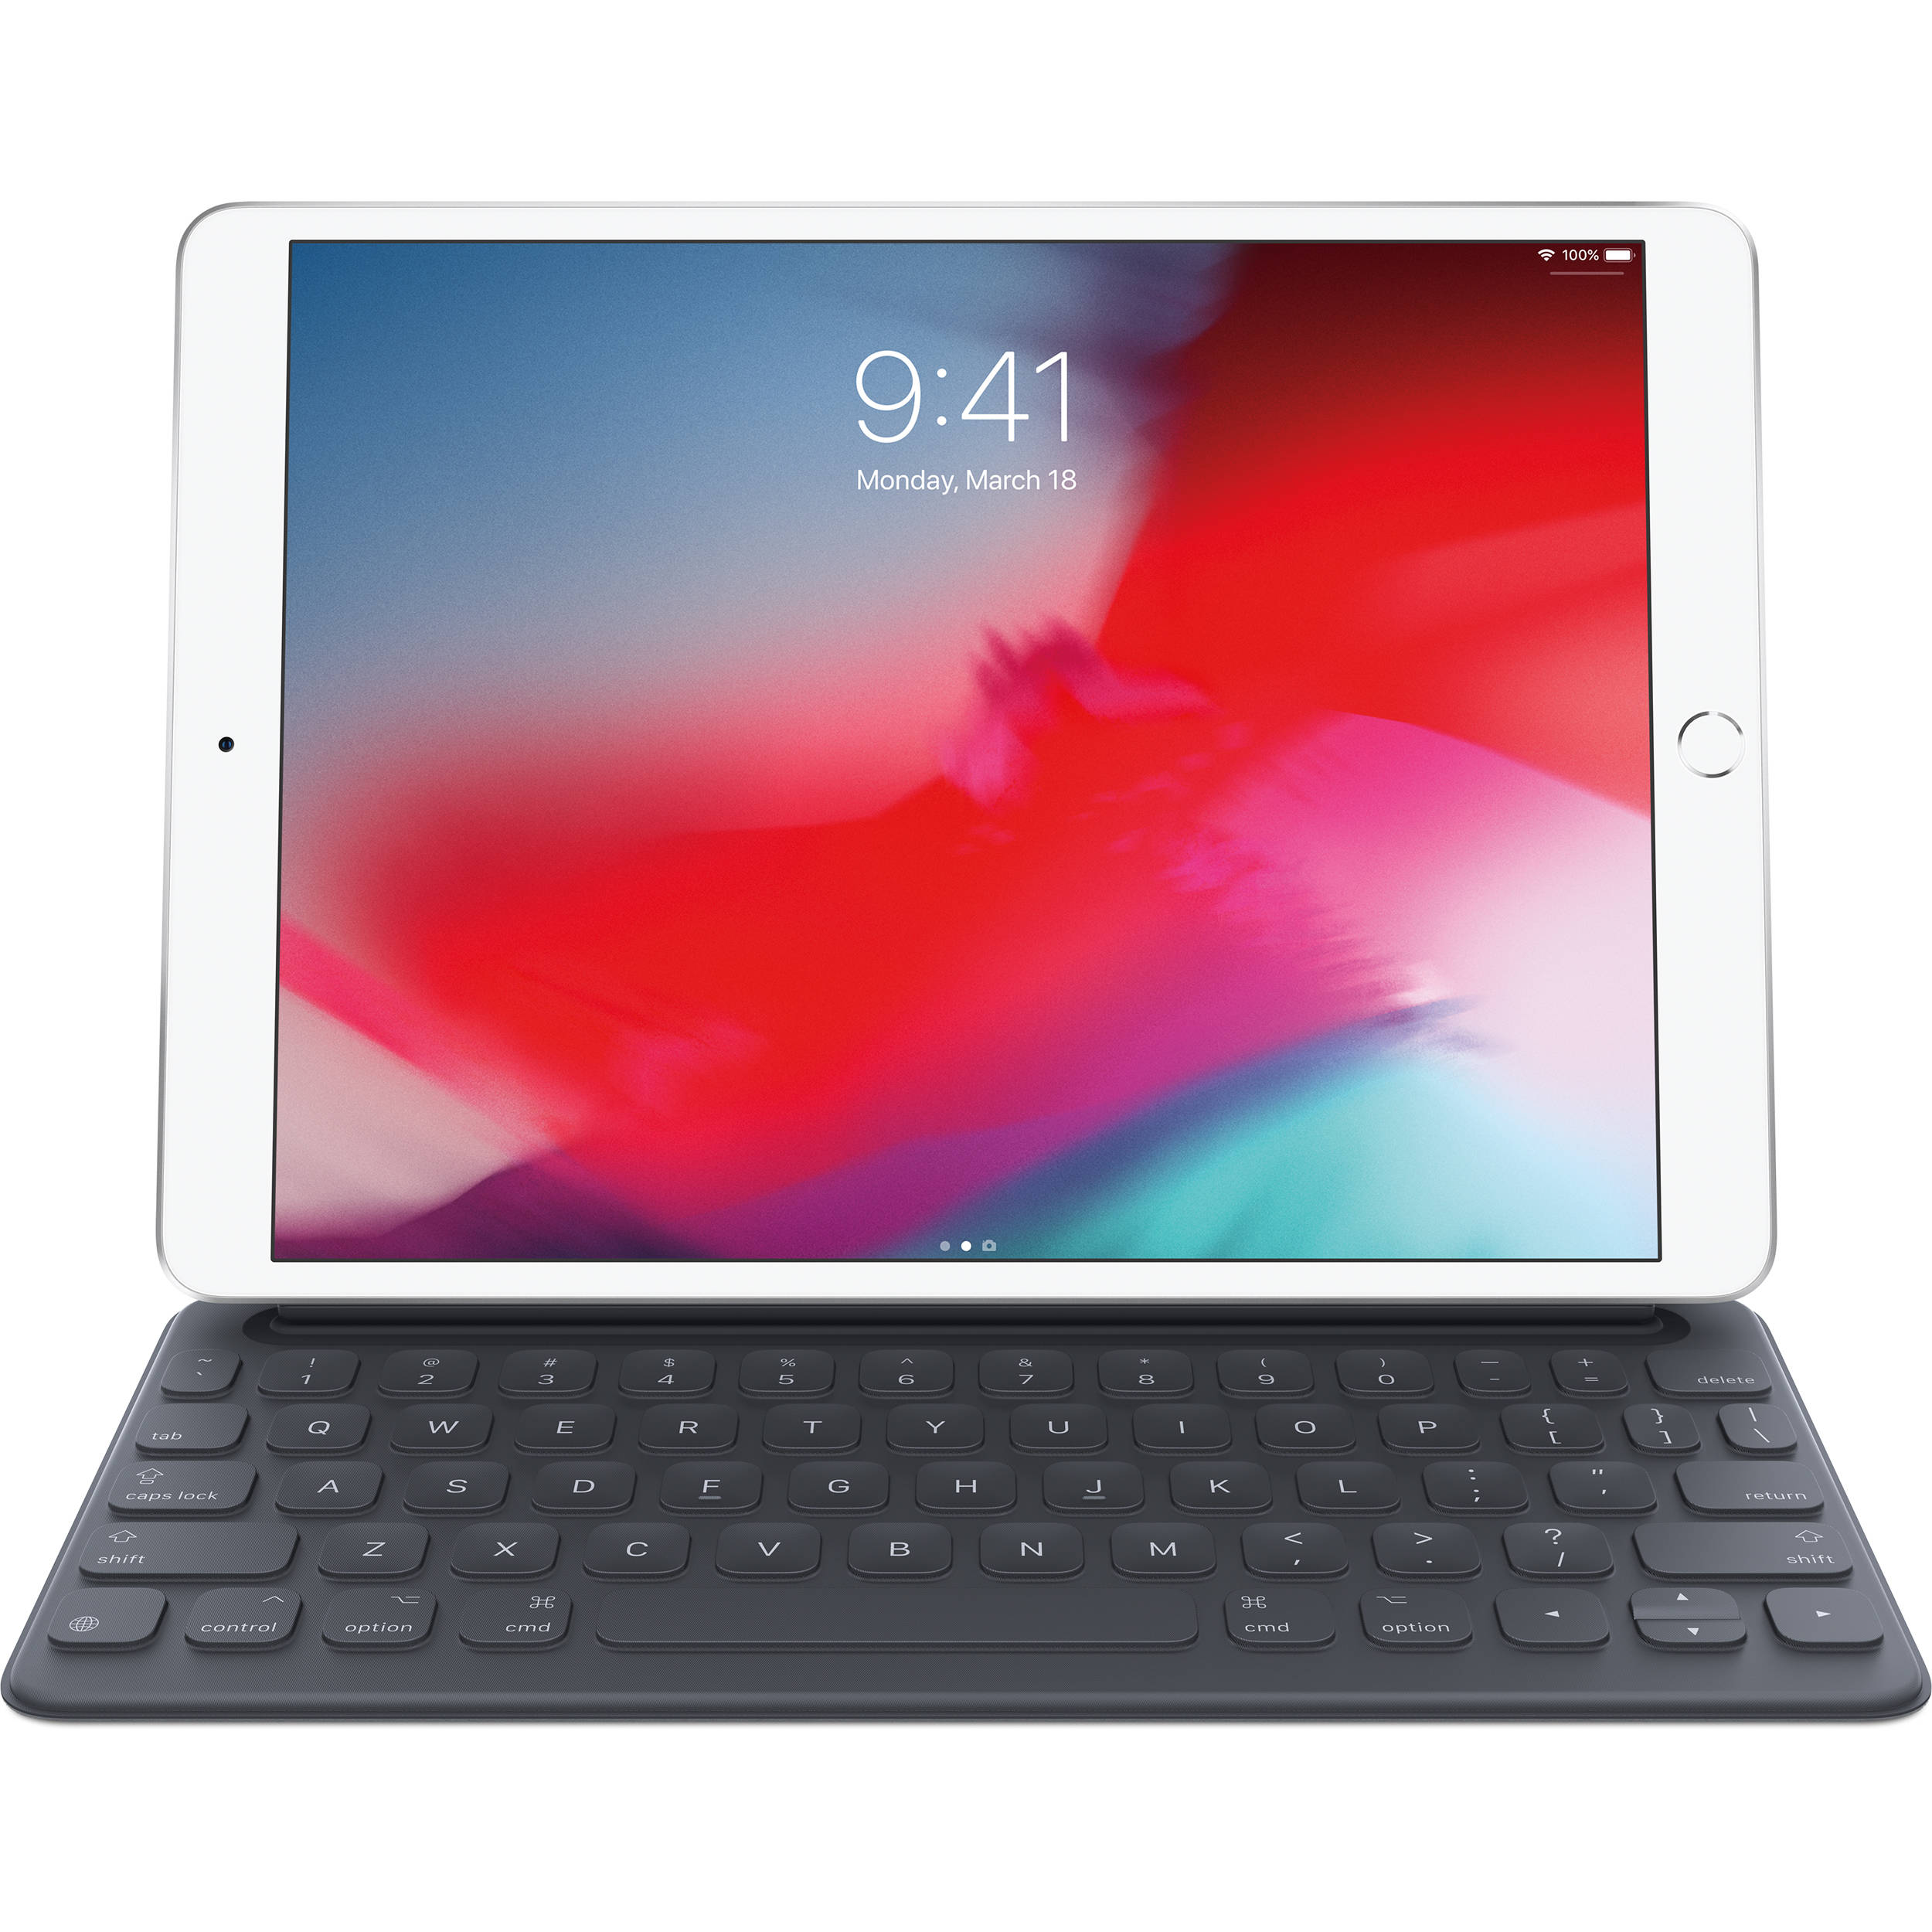 Apple iPad Keyboards | B&H Photo Video